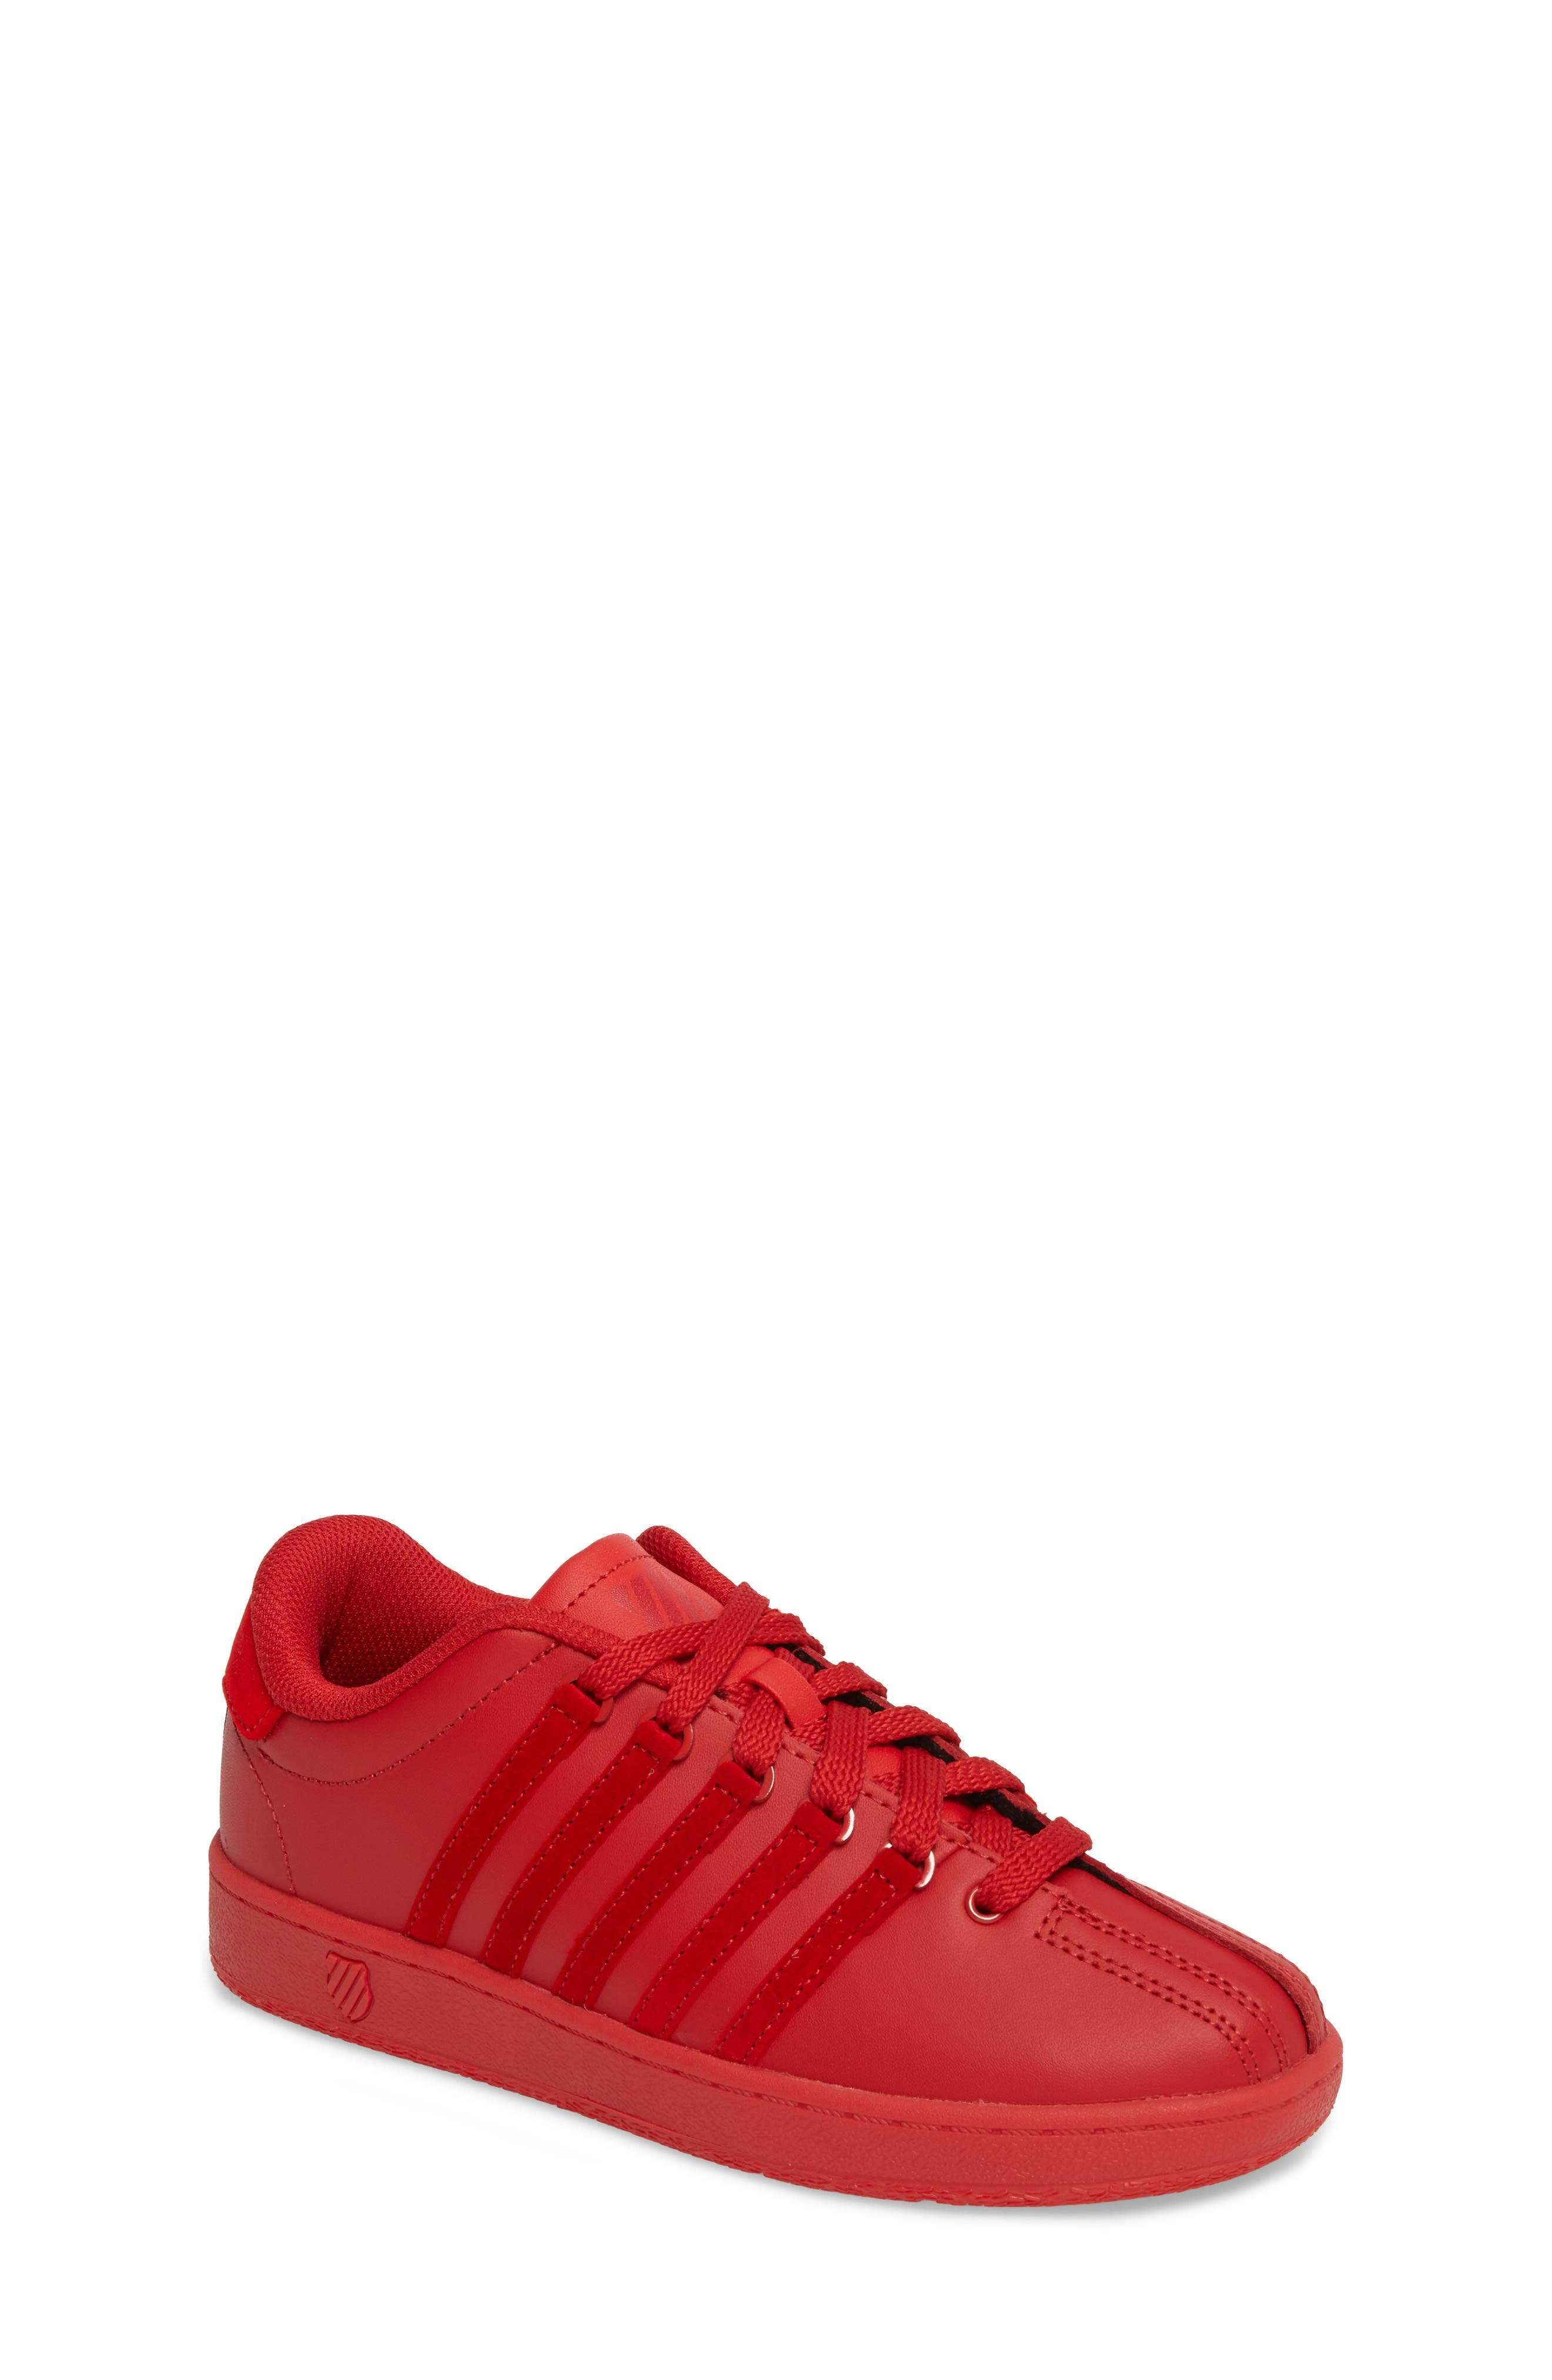 Classic VN Sneaker,                         Main,                         color, Ribbon Red